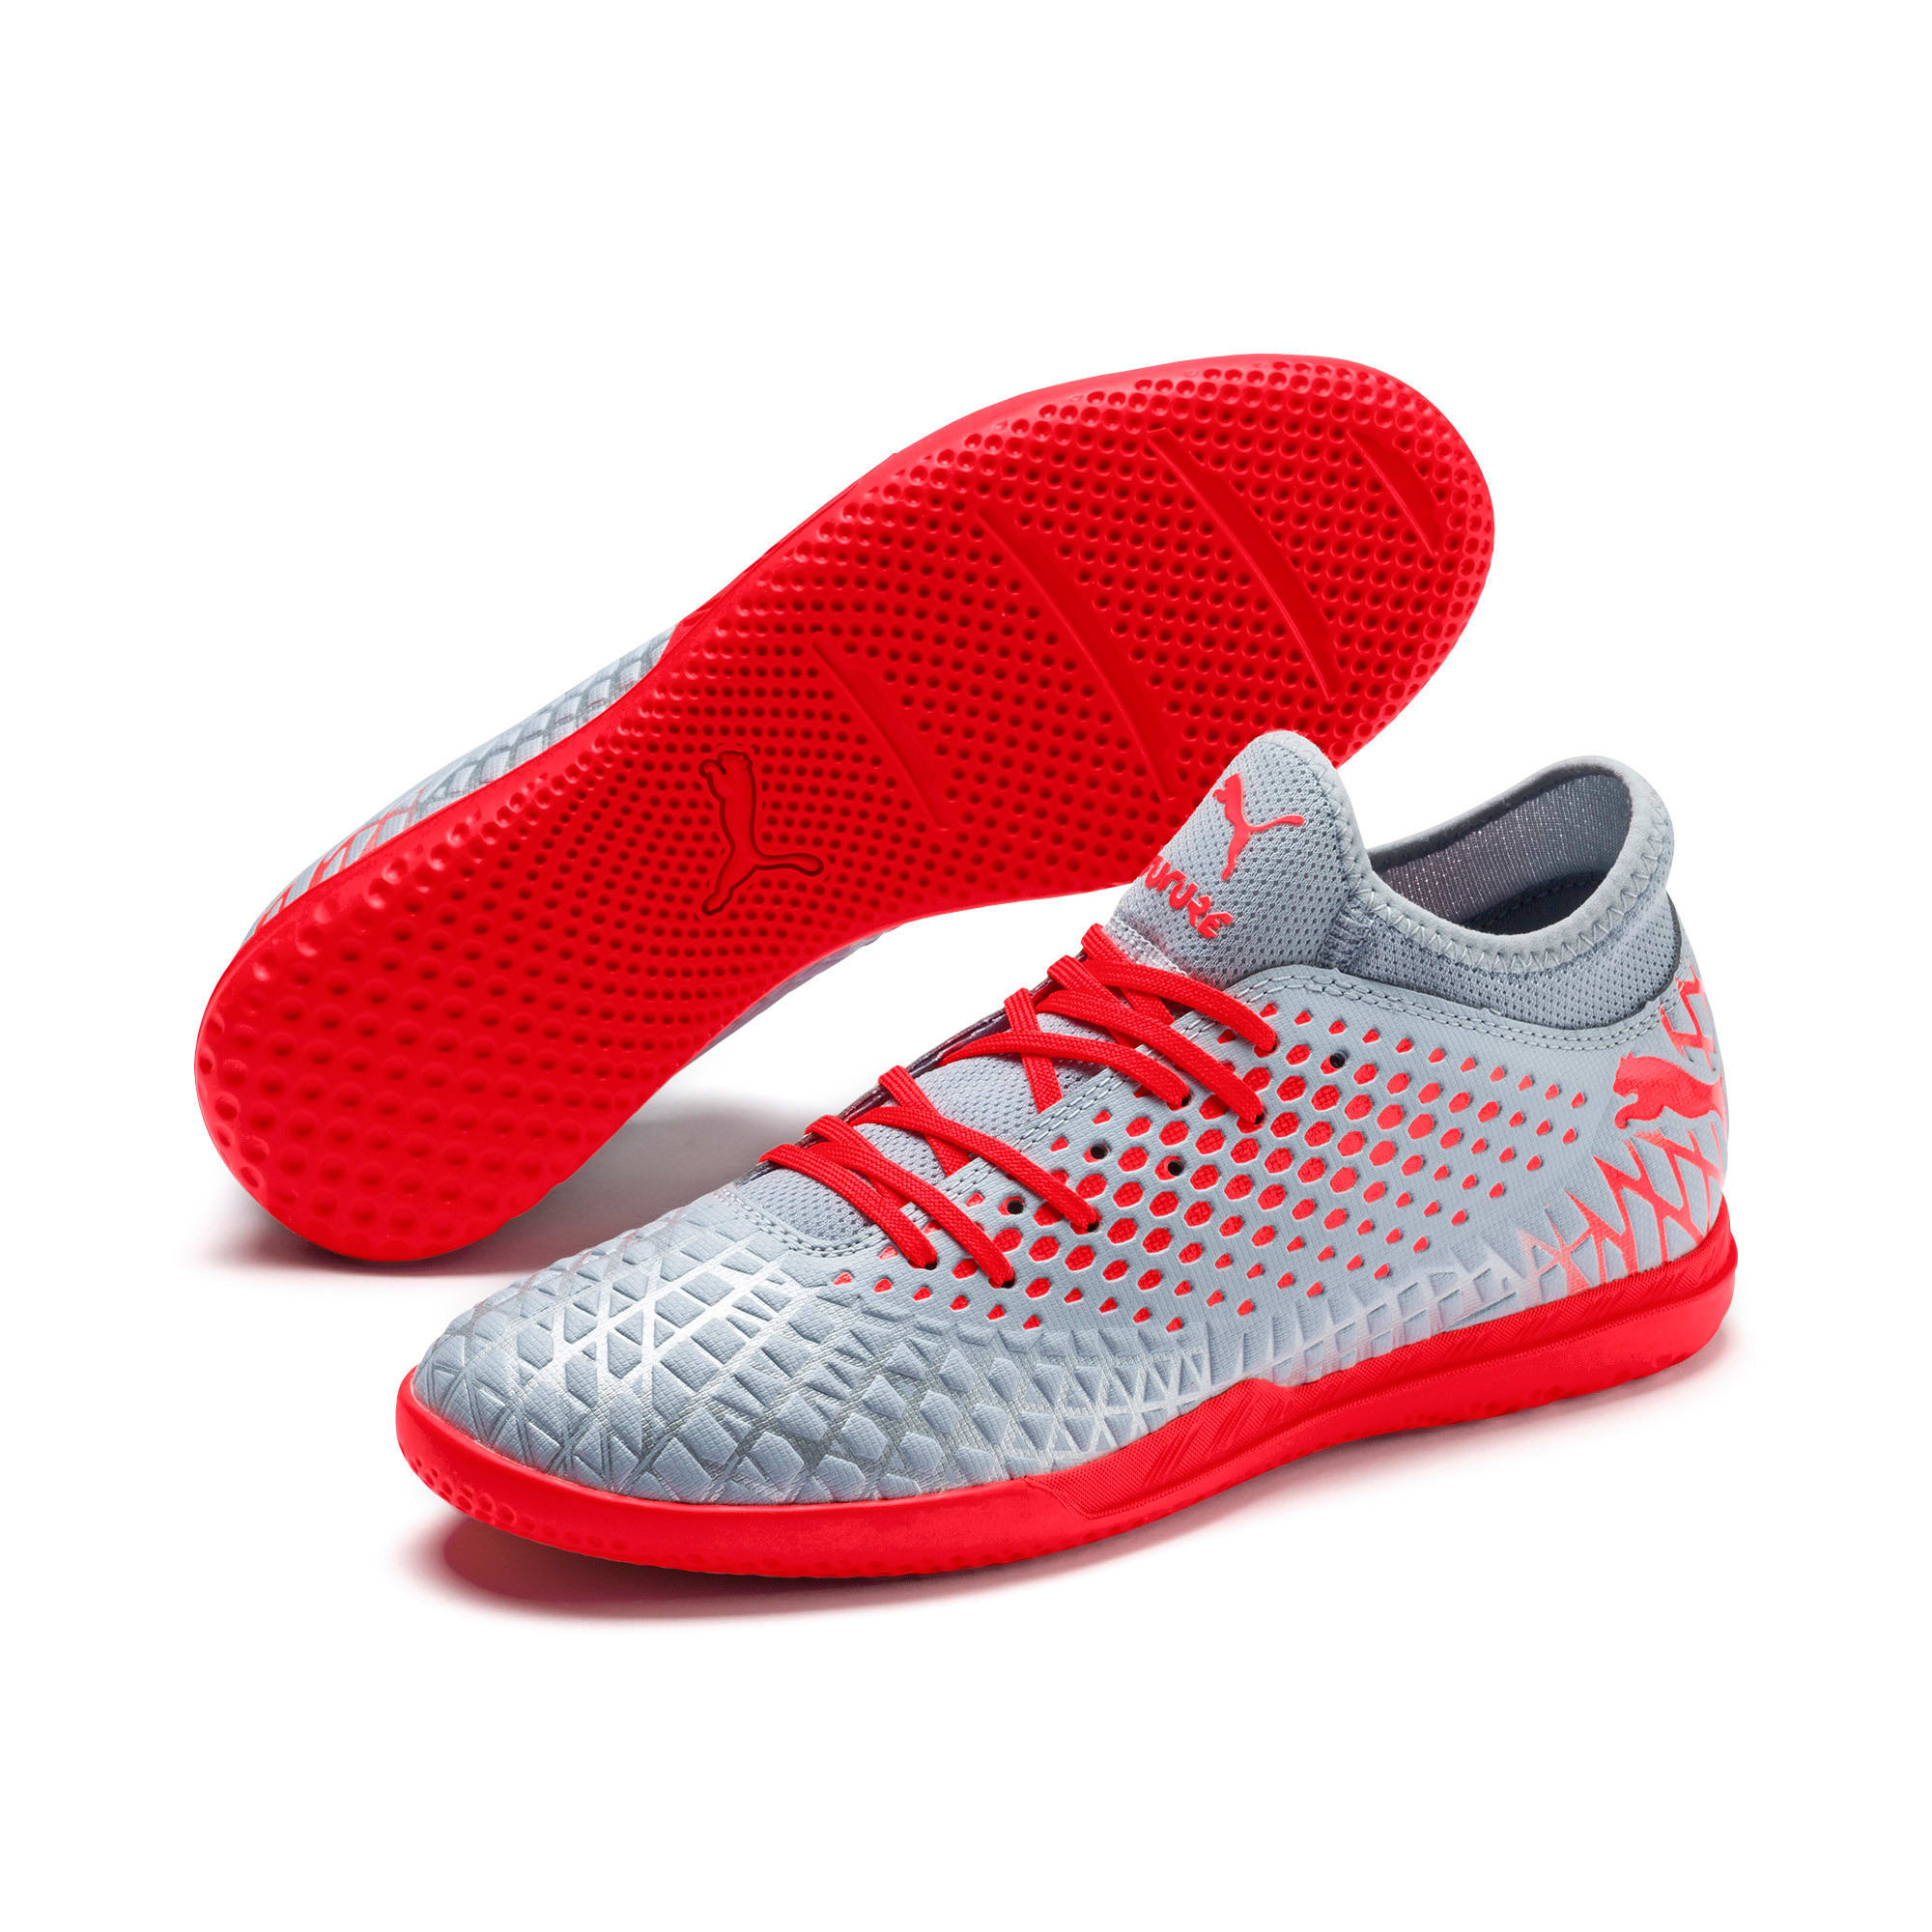 Thumbnail 3 of FUTURE 4.4 IT Men's Soccer Shoes, Glacial Blue-Nrgy Red, medium